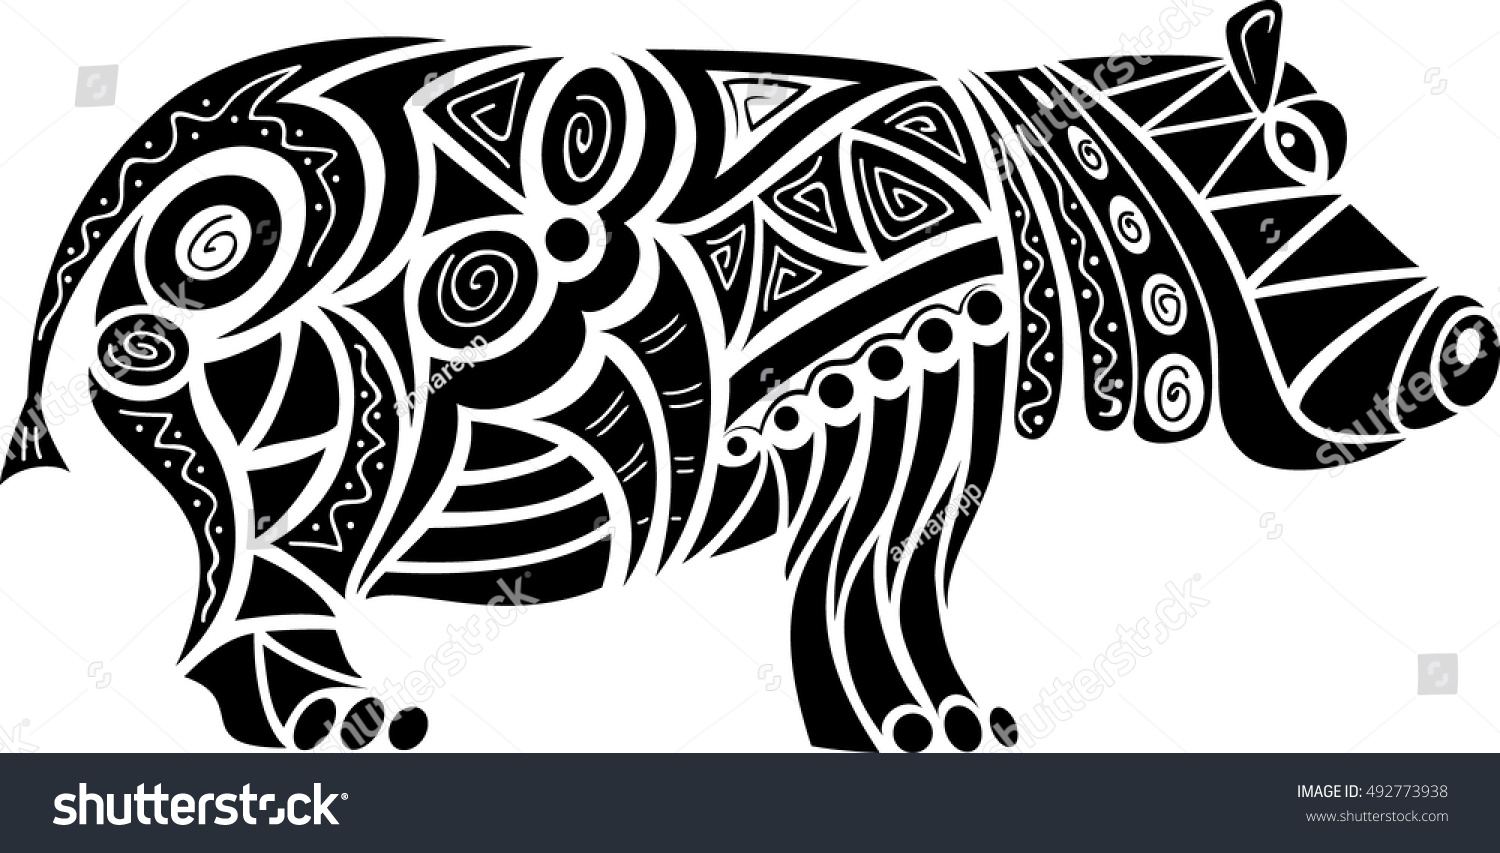 Stock Illustration Volleyball Tribal Abstract Vector: Abstract Tribal Pattern Hippo Silhouette Vector Stock